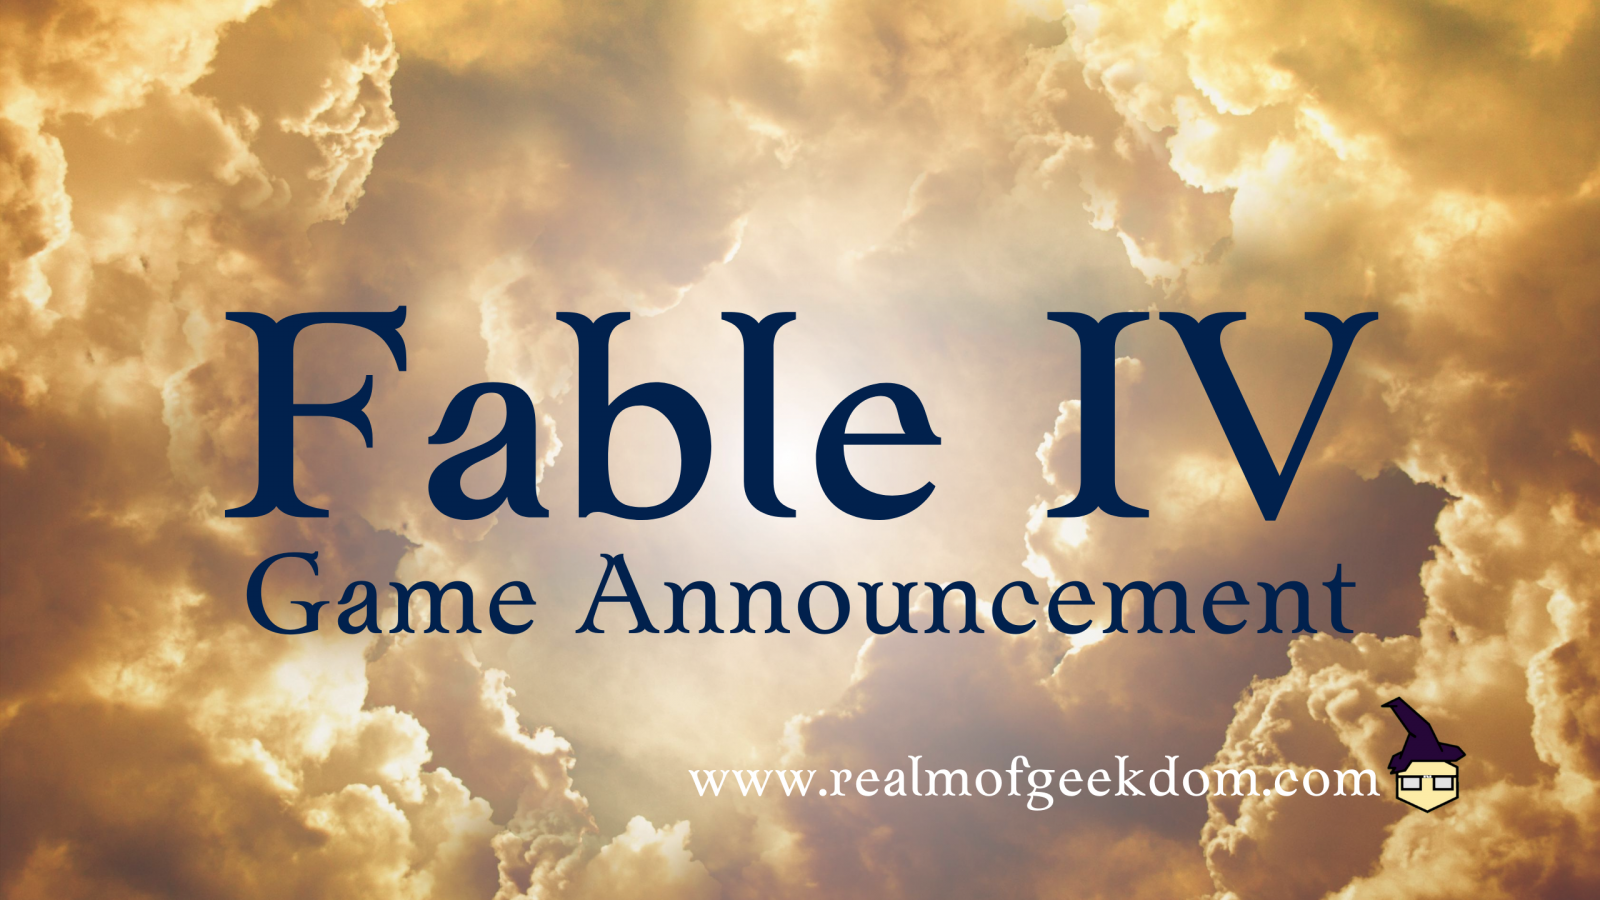 Fable IV Game Announcement Title Image